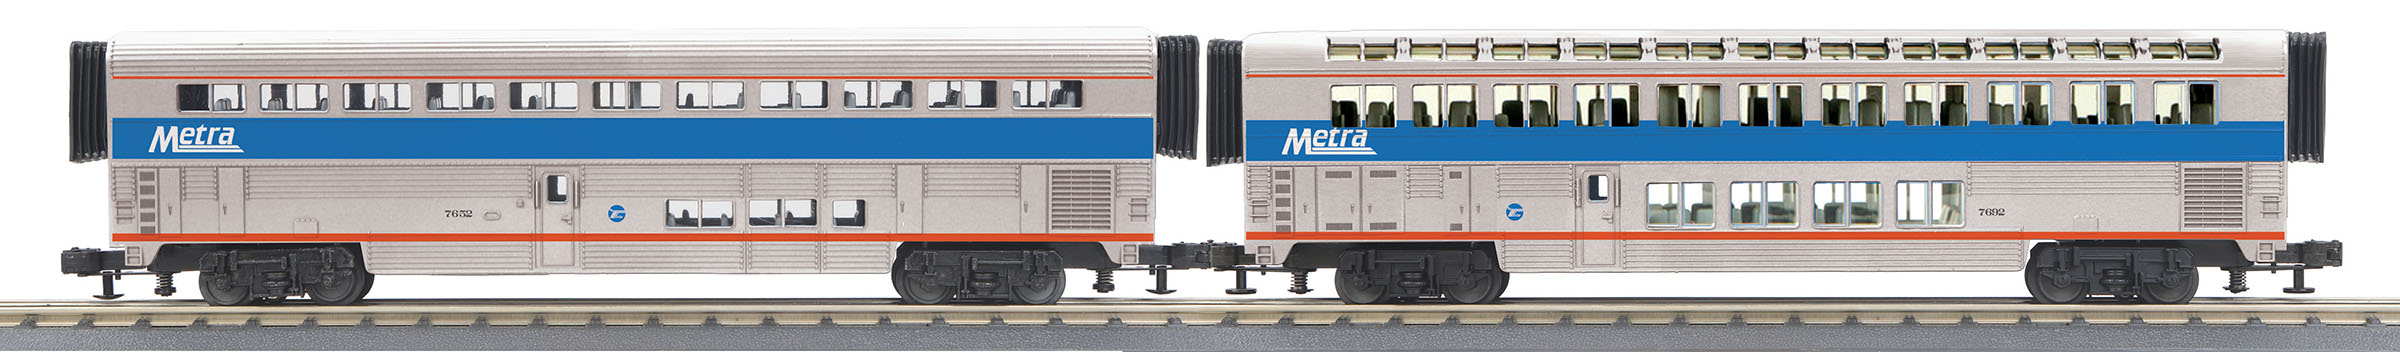 MTH 306545 O-31 SuperLiner Coach/Lounge Set METRA #7658 2